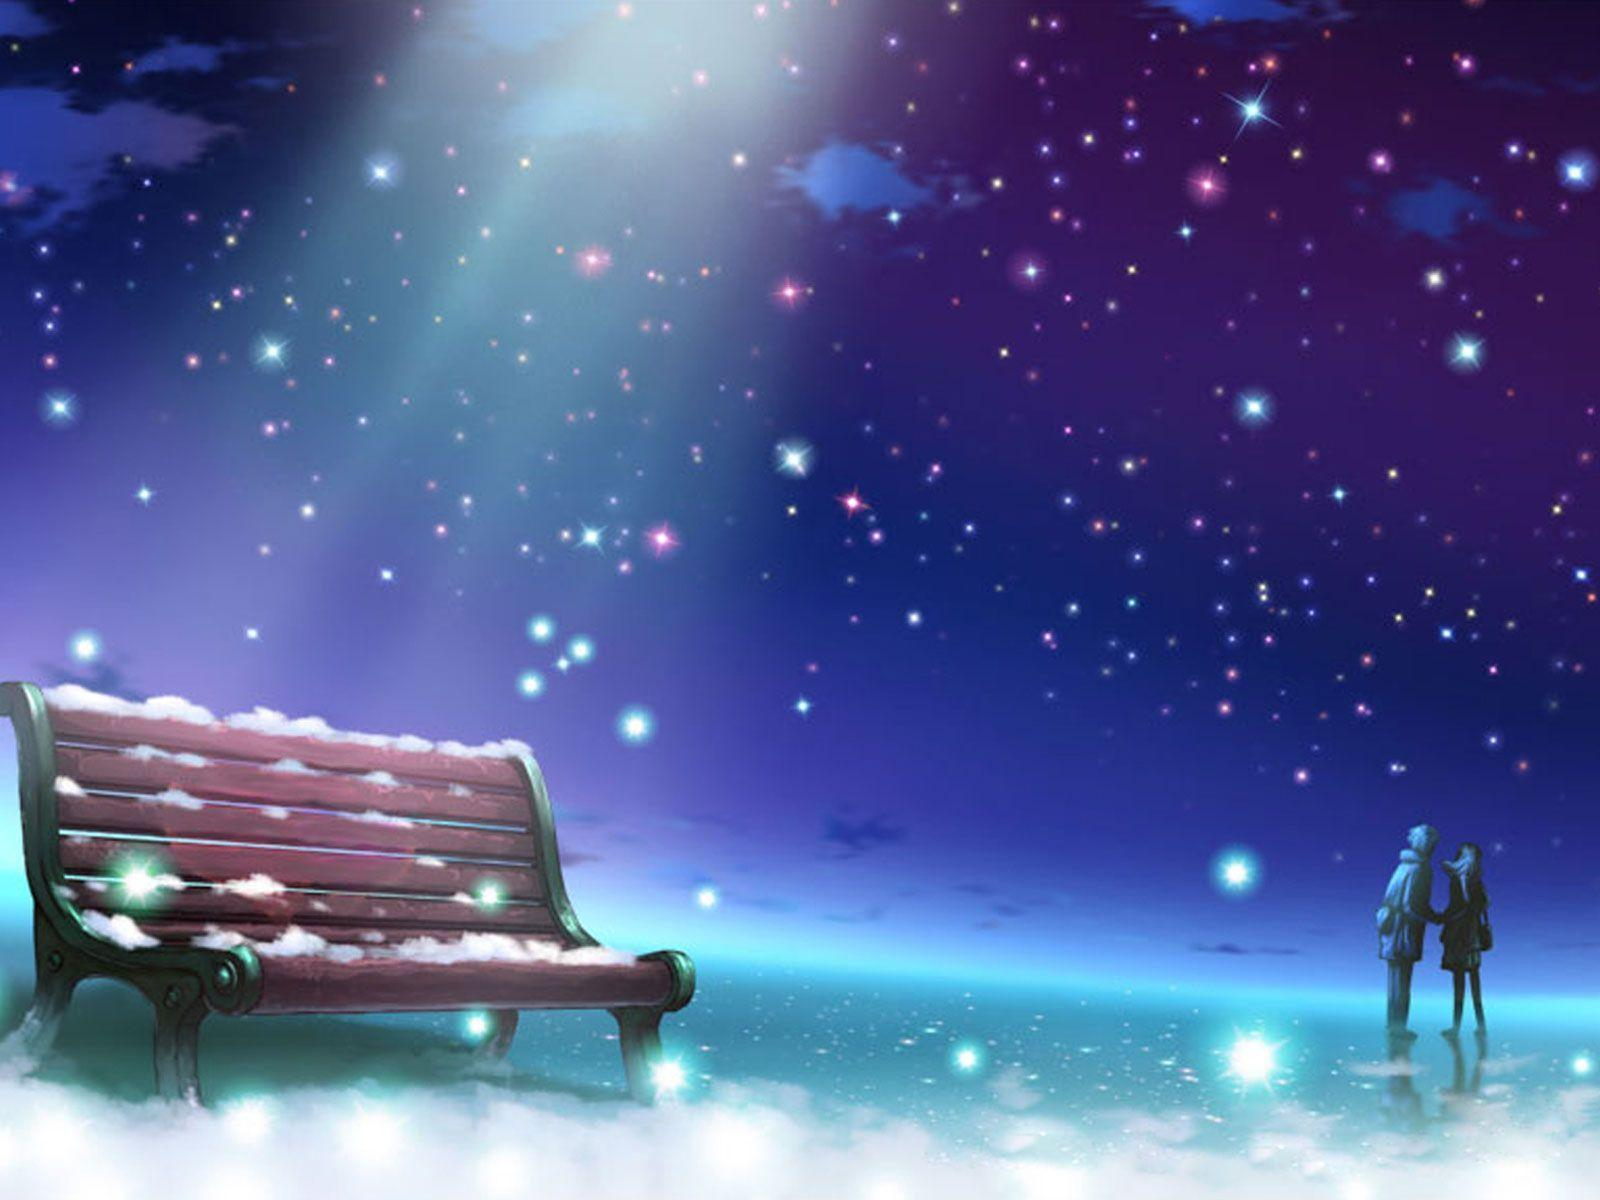 Romantic Love cartoon Wallpaper : Romantic Anime Wallpapers - Wallpaper cave